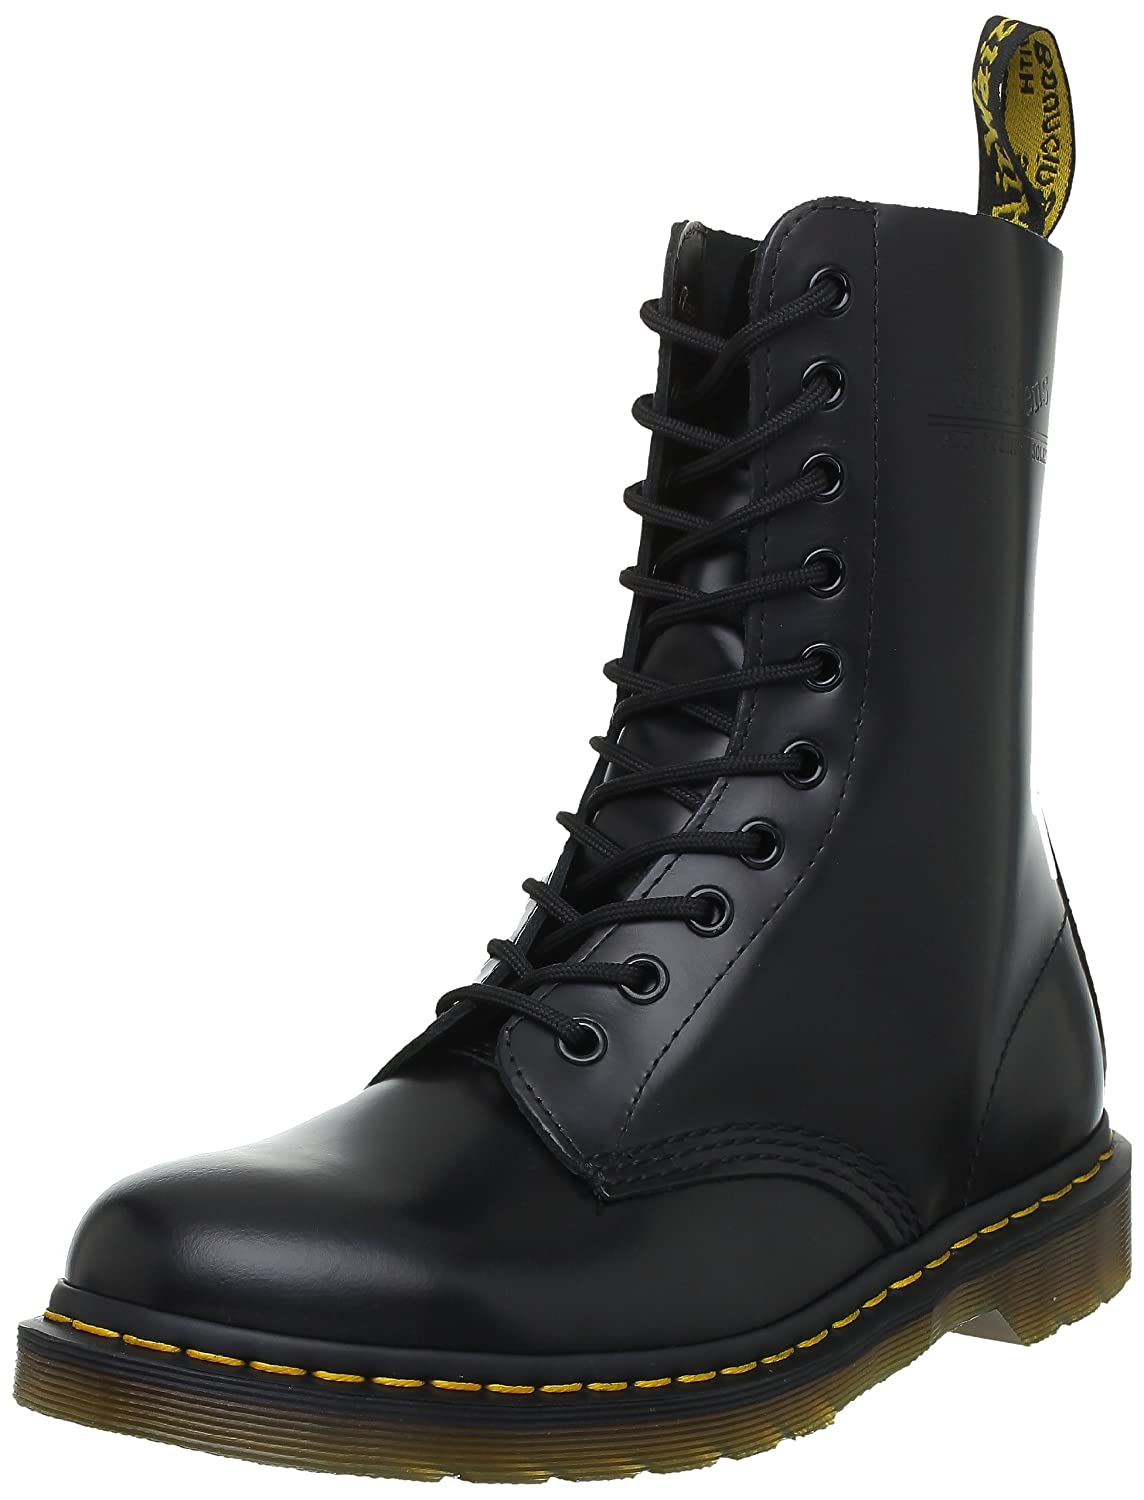 Dr. Martens Original 10 Eye Boot B000BNWOY6 9 UK (US Men 10 M/Women 11 M)|Black Smooth